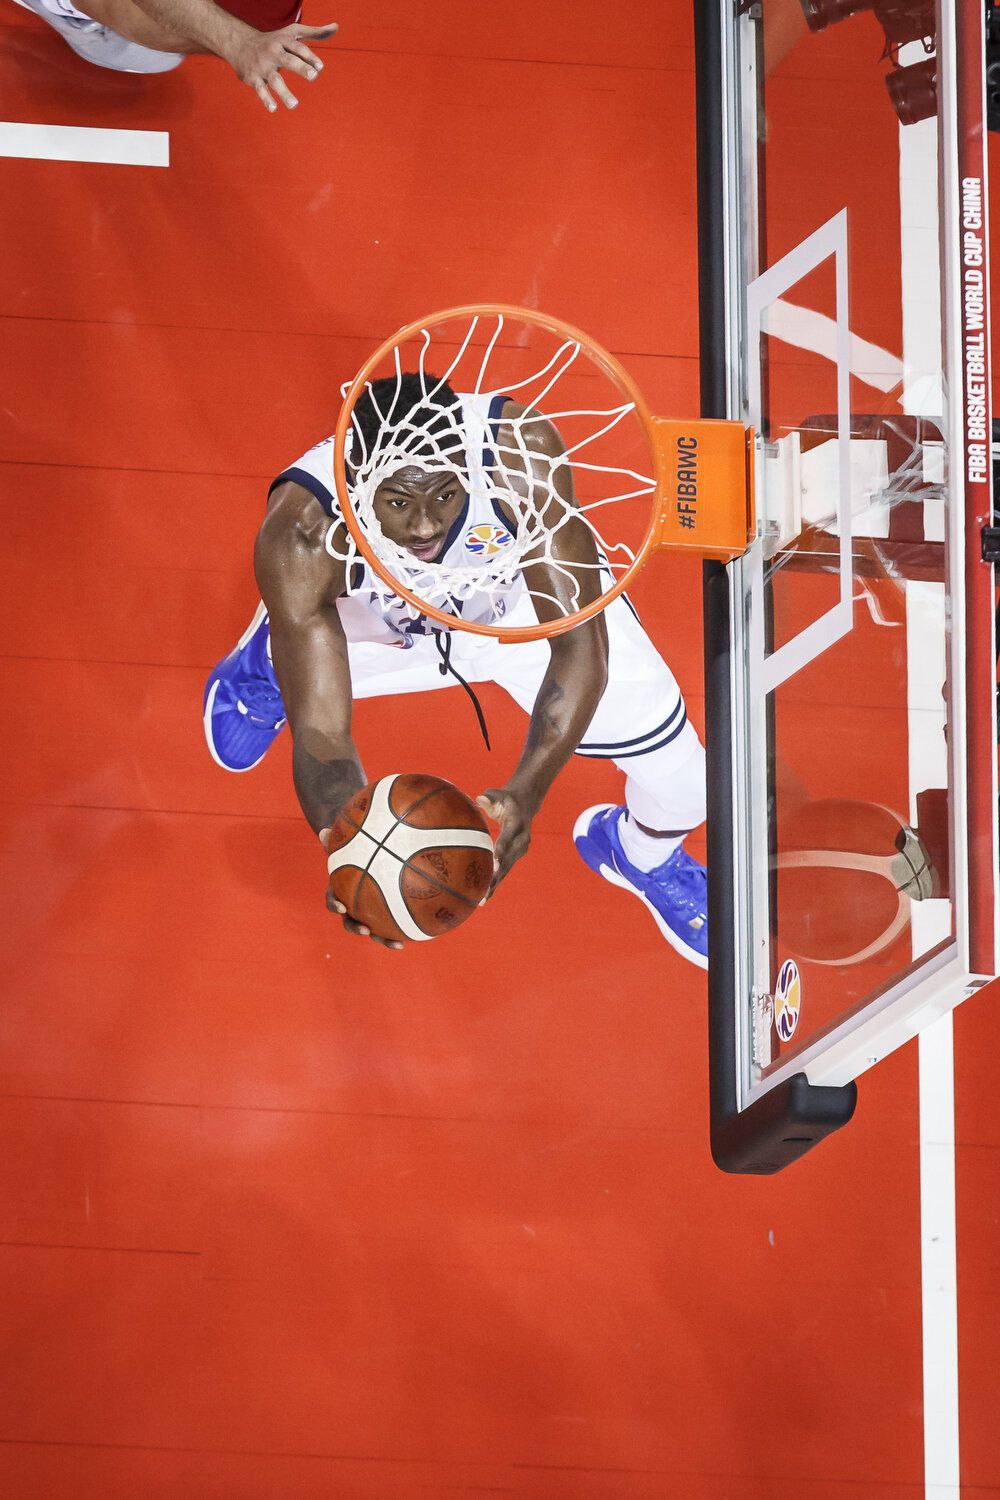 Thanasis Antetokounmpo of Greece attempts a reverse layup during the first round of the FIBA Basketball World Cup. All rights reserved (Mandatory photo credit: Jon Lopez / FIBA )